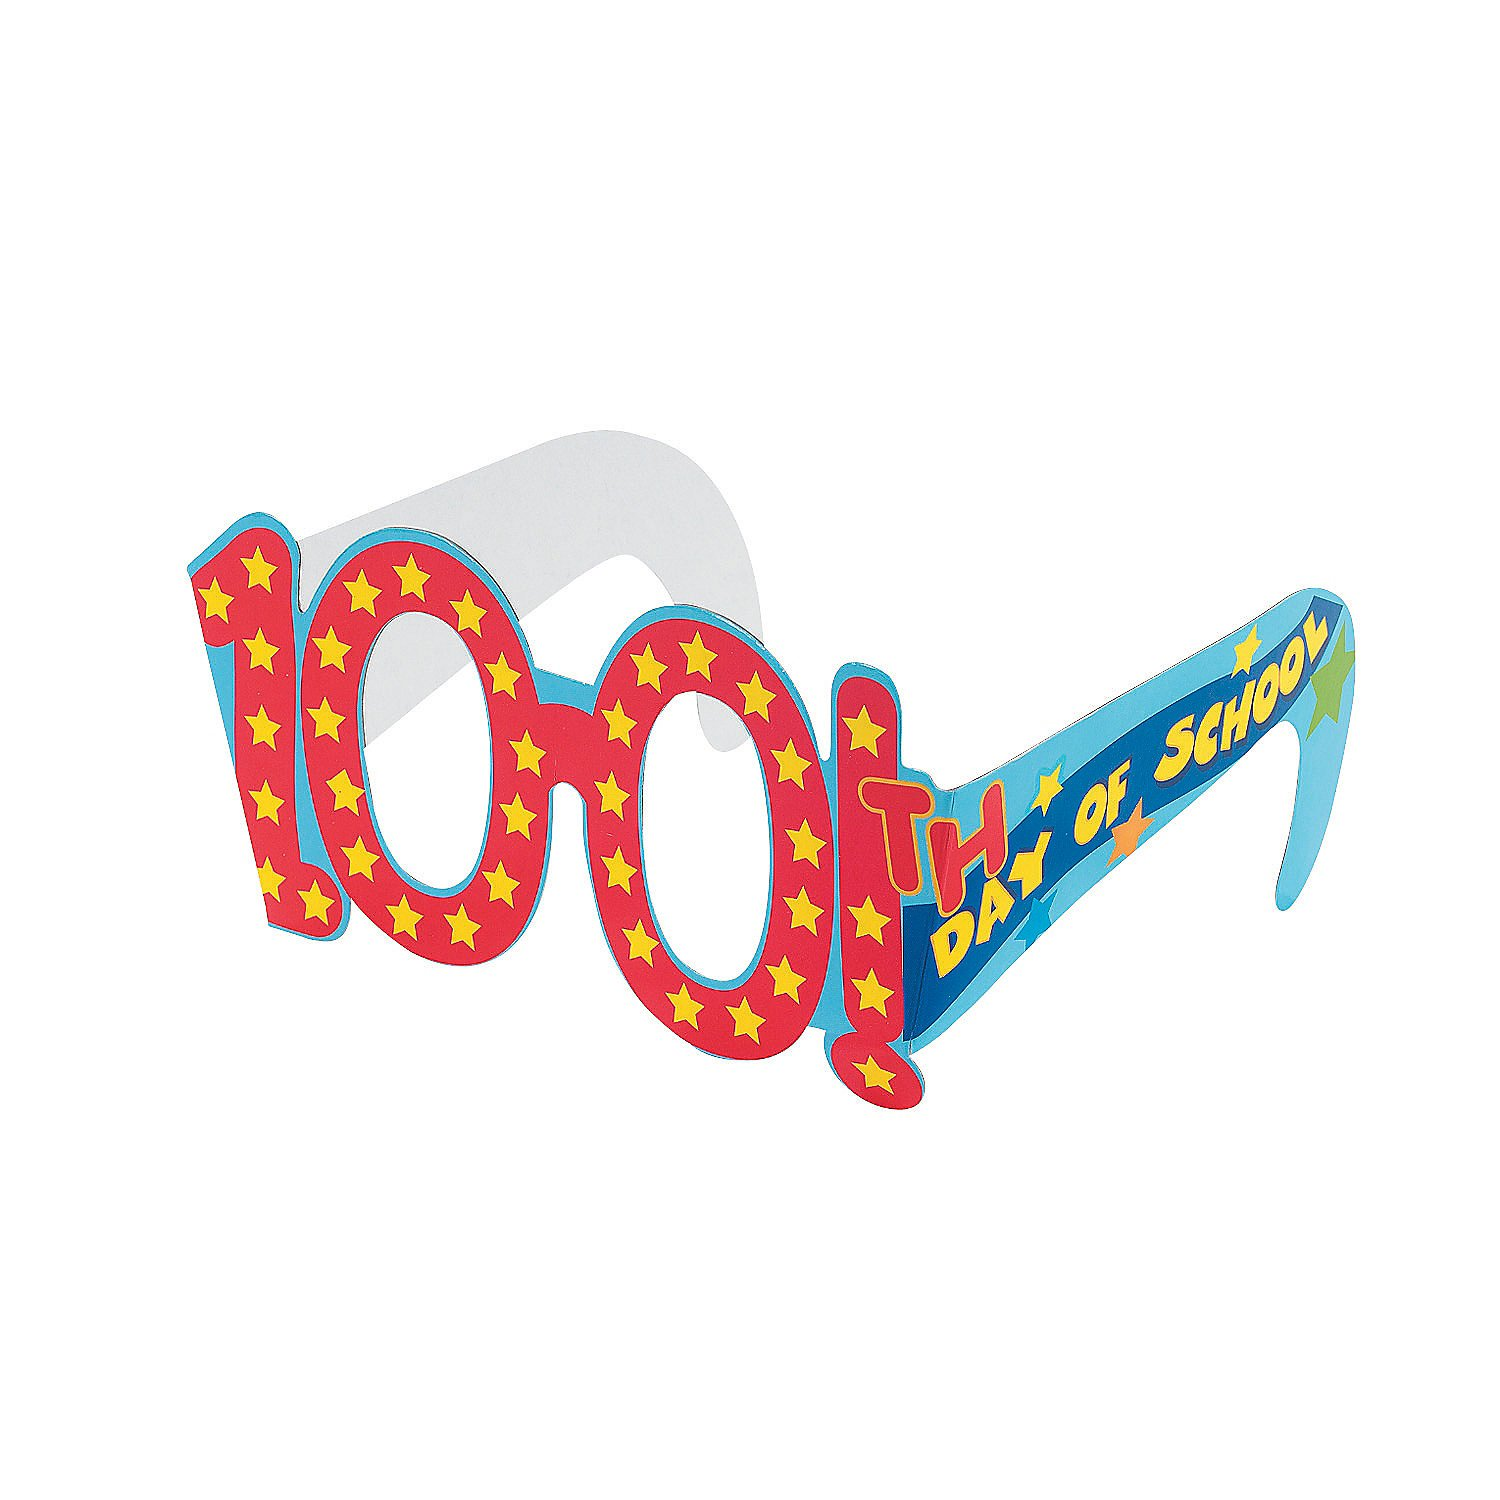 Back to school sale eyeglass clipart banner library Amazon.com: 100th Day of School Cardboard Glasses: Health & Personal ... banner library